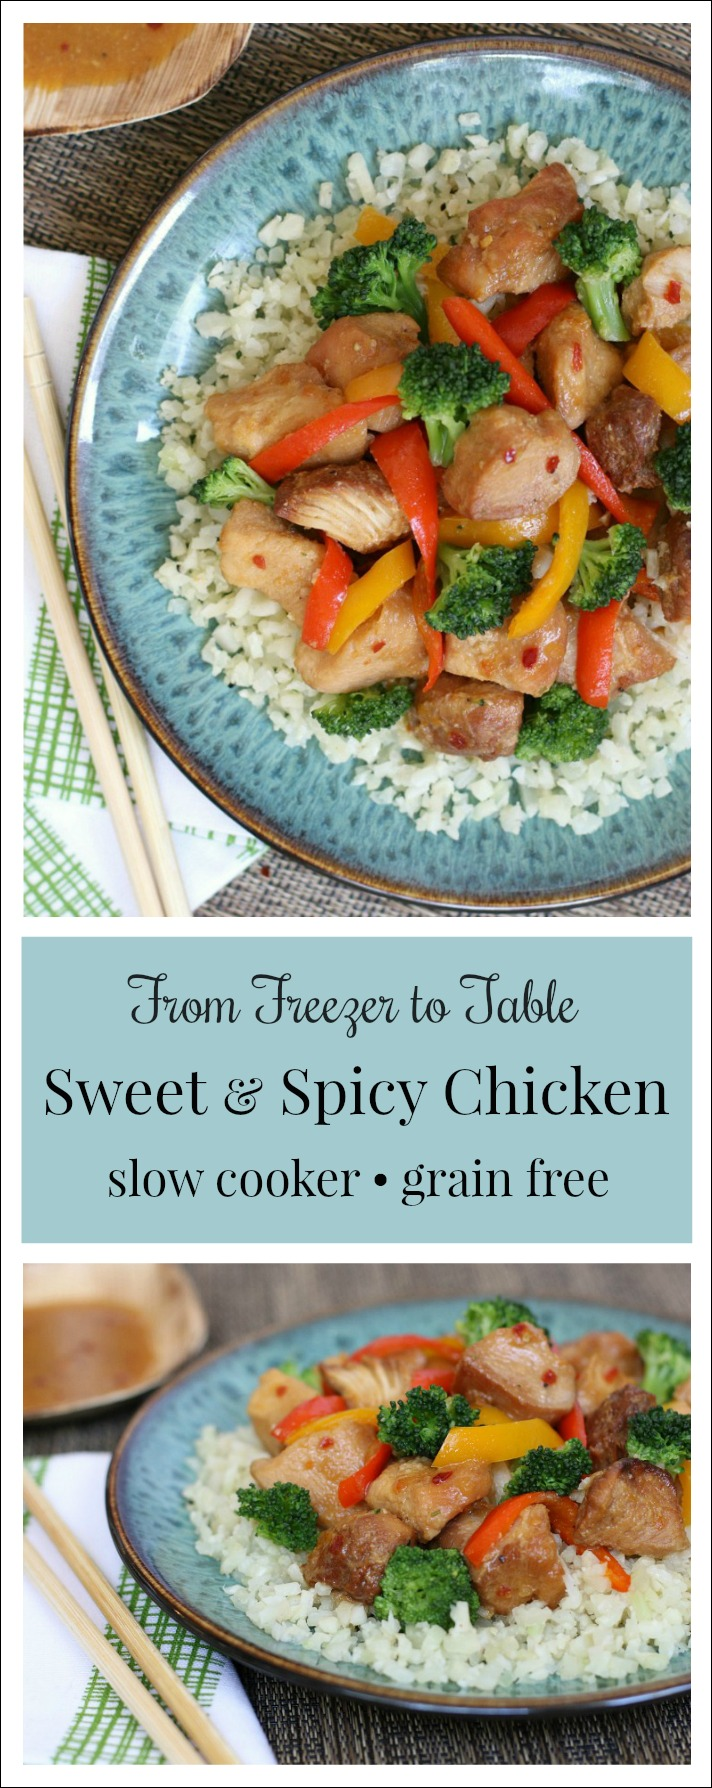 Slow Cooker Sweet & Spicy Chicken! Simply toss this tasty freezer meal right into your slow cooker and enjoy a super-easy home-cooked meal!